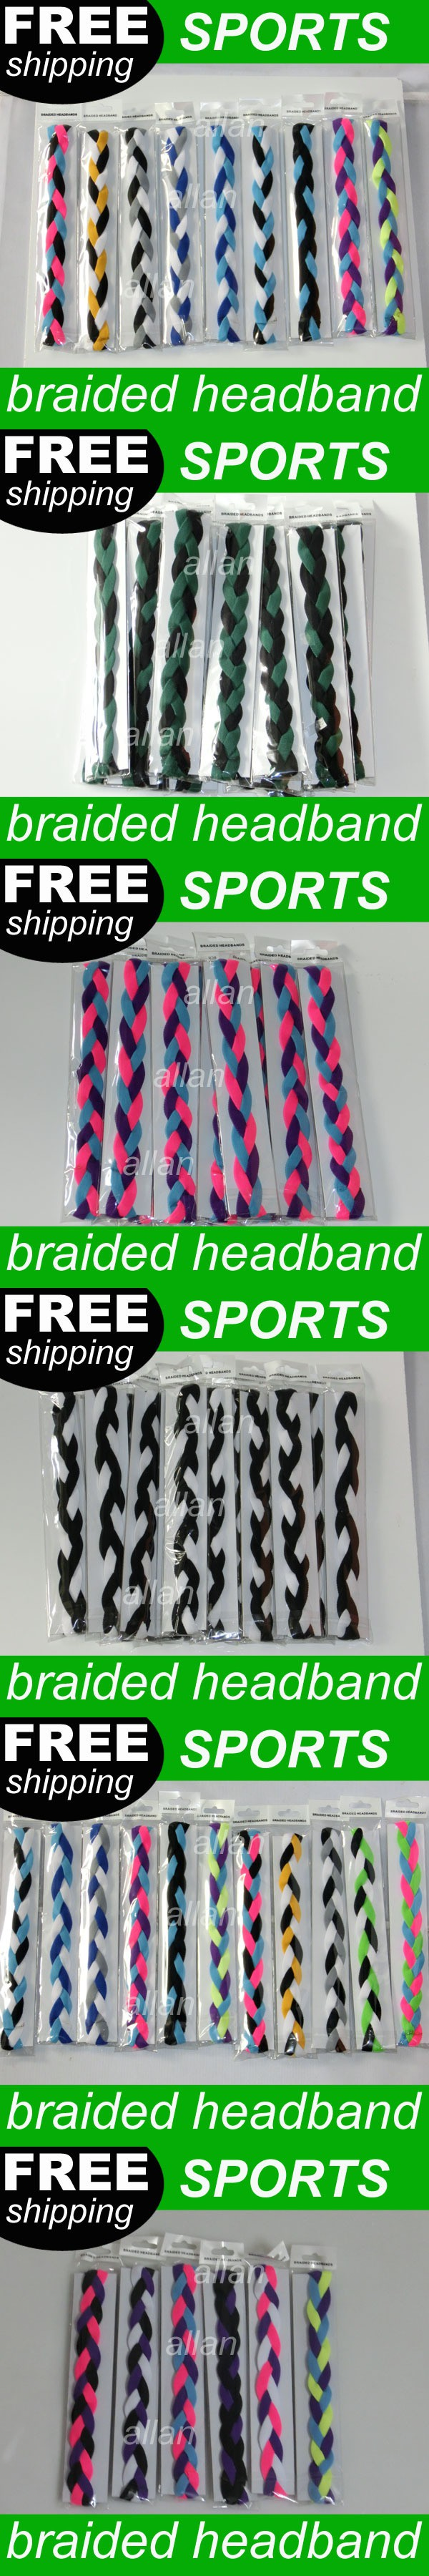 New baby ornaments - 2013 New Baby Elastic Braided Headbands Cheap Baby Headbands Wholesalers Kids Hair Ornaments For Girl And Boy